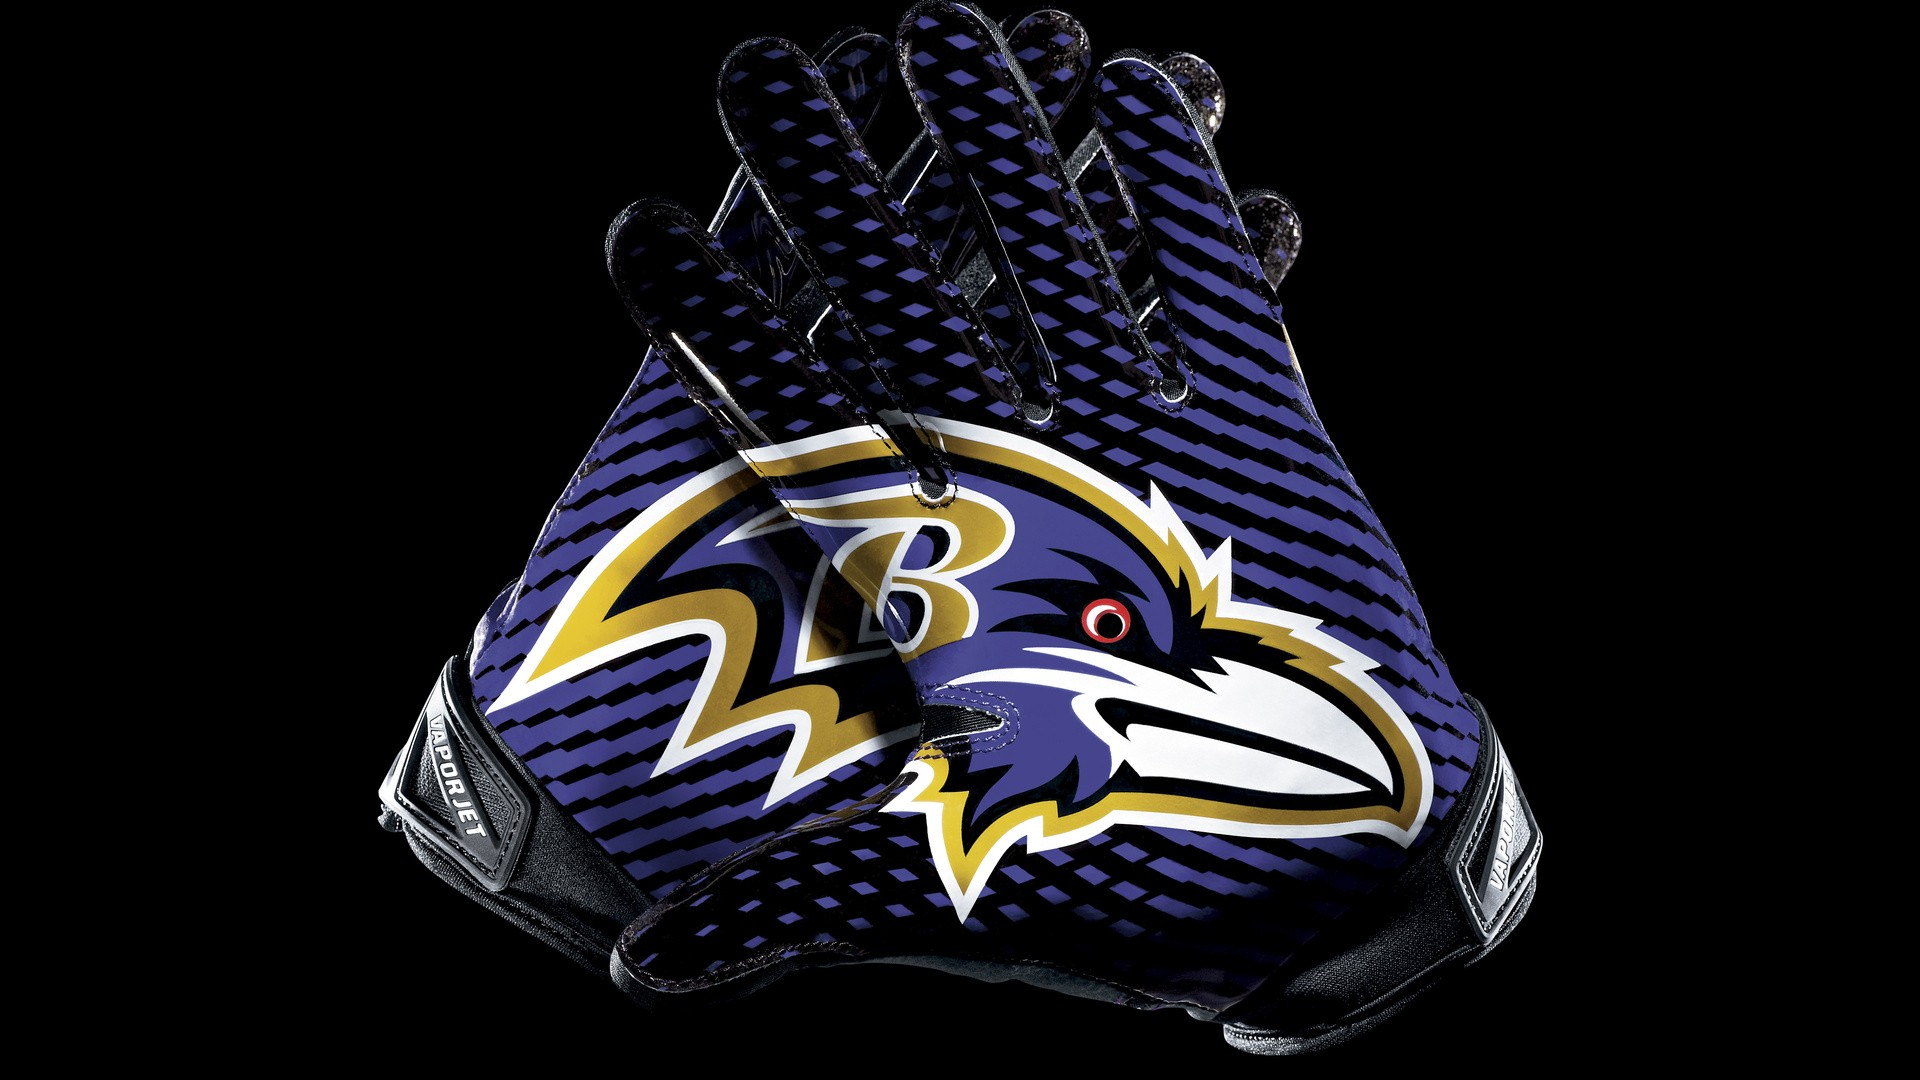 Baltimore Ravens Backgrounds HD 2020 NFL Football Wallpapers 1920x1080